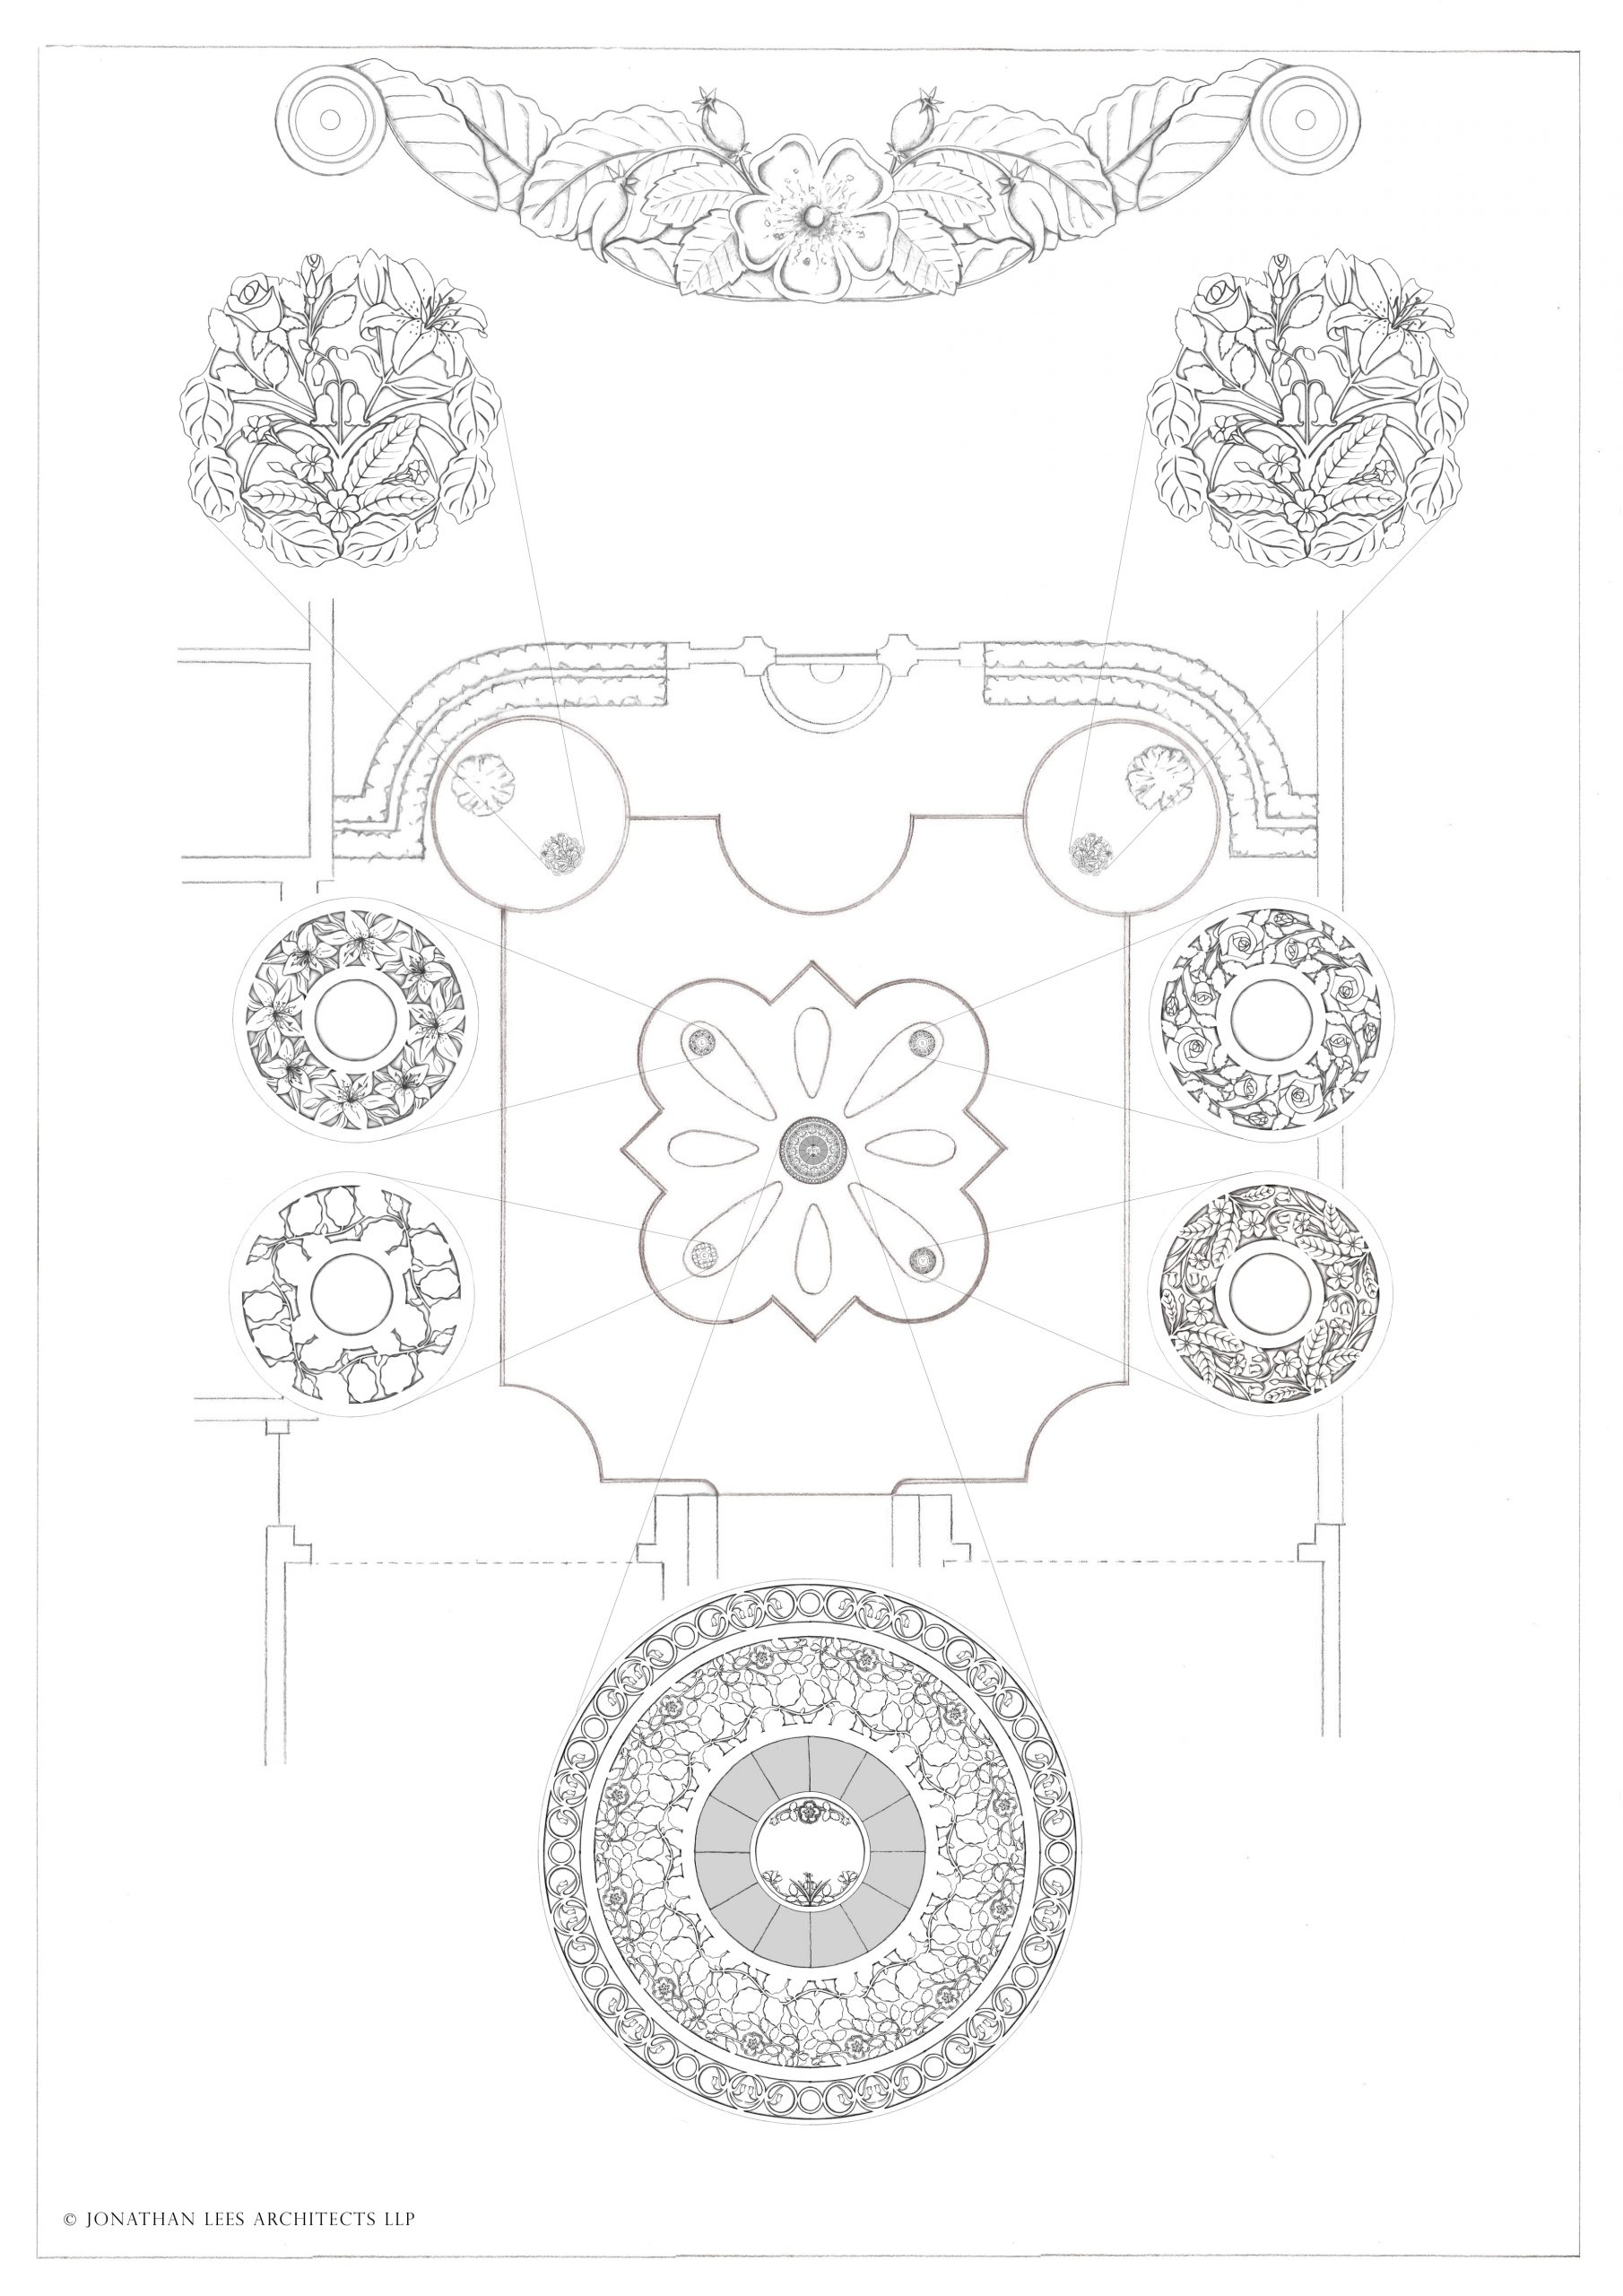 Brass metal inlay design for driveway and courtyard